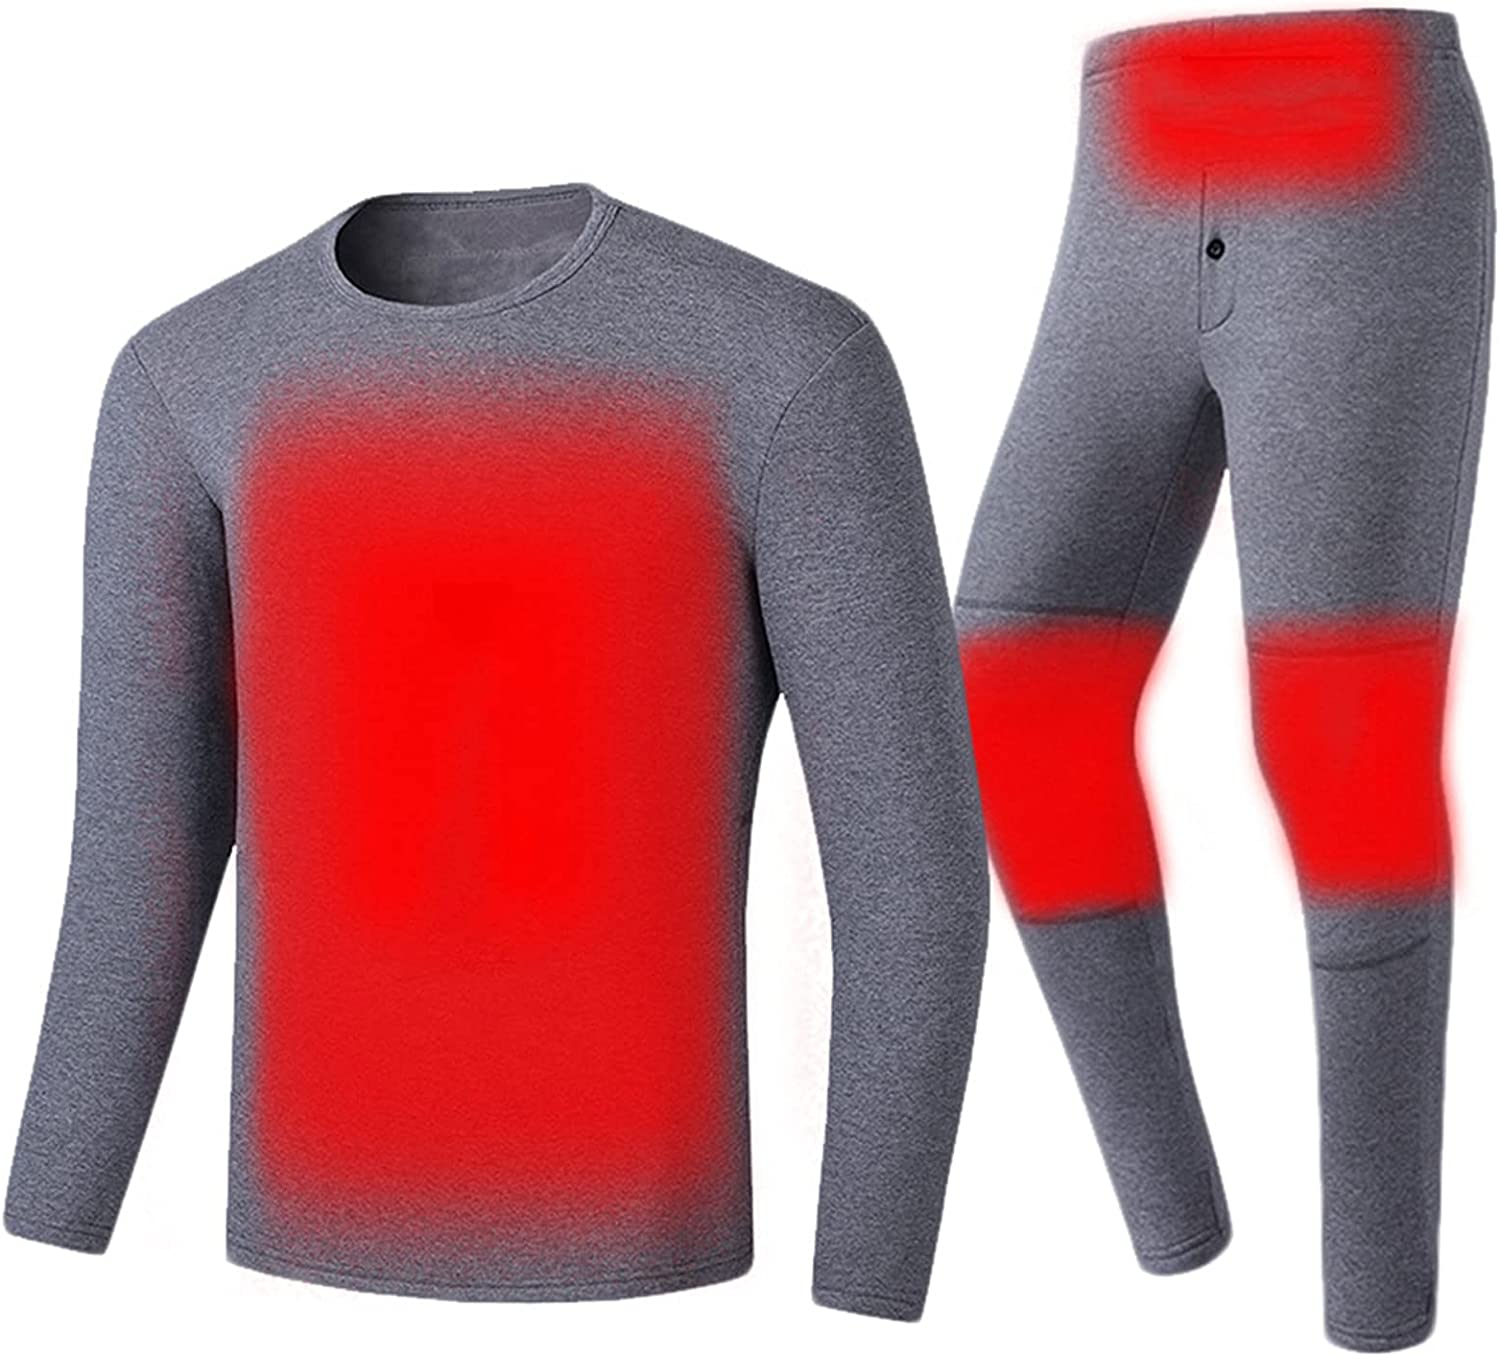 Heated Underwear Suit 4 Areas Heating Thermal Underwear Intelligence Constant Temperature Winter Shirt and Pant